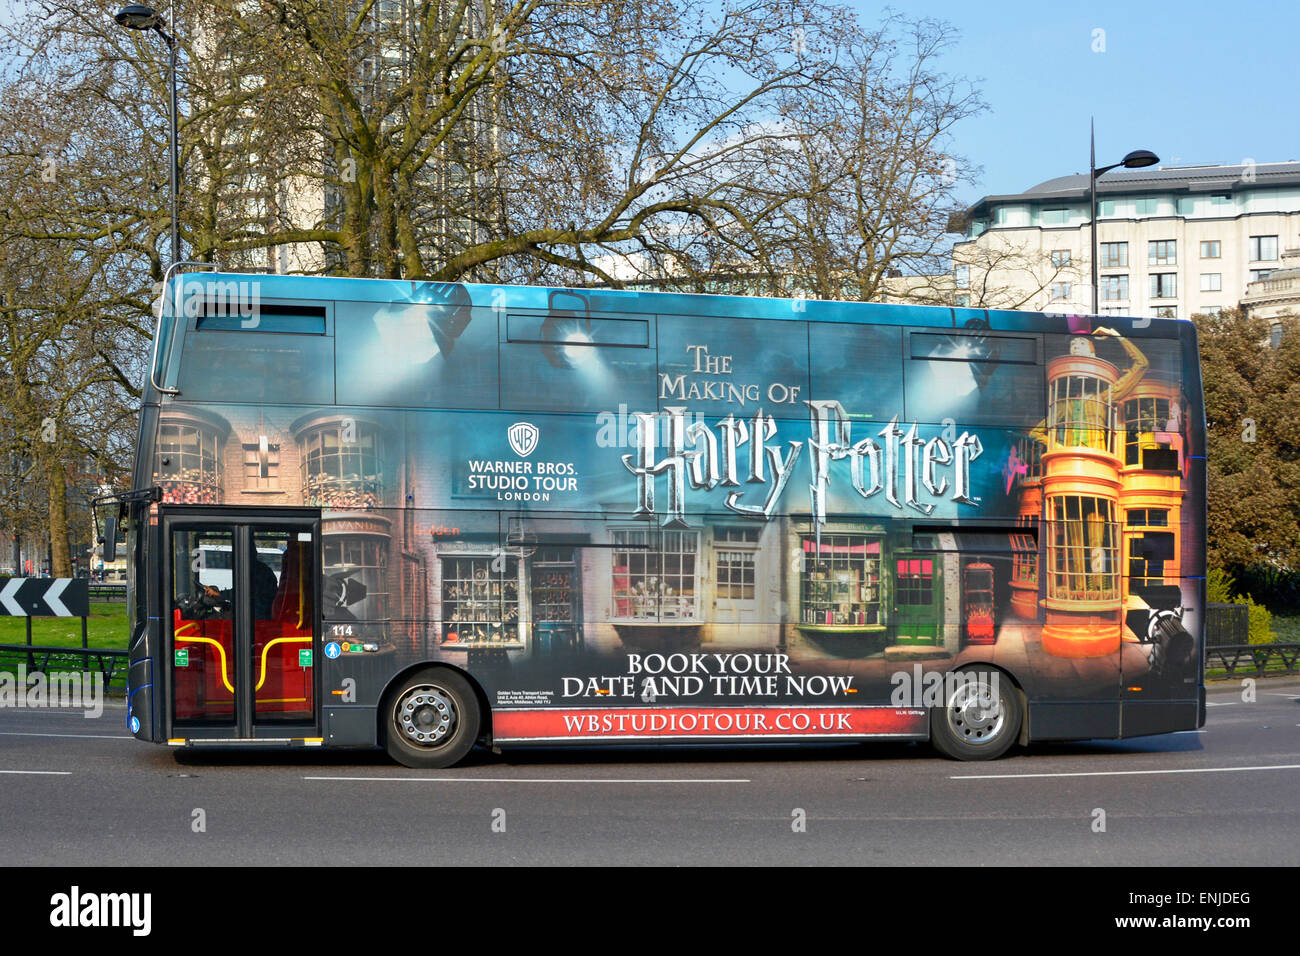 The Making of Harry Potter - City WondersTop Rated Tours· Insider Knowledge· English Speaking Guides· Priority AccessDestinations: Buckingham Palace, Tower of London, Westminster Abbey.